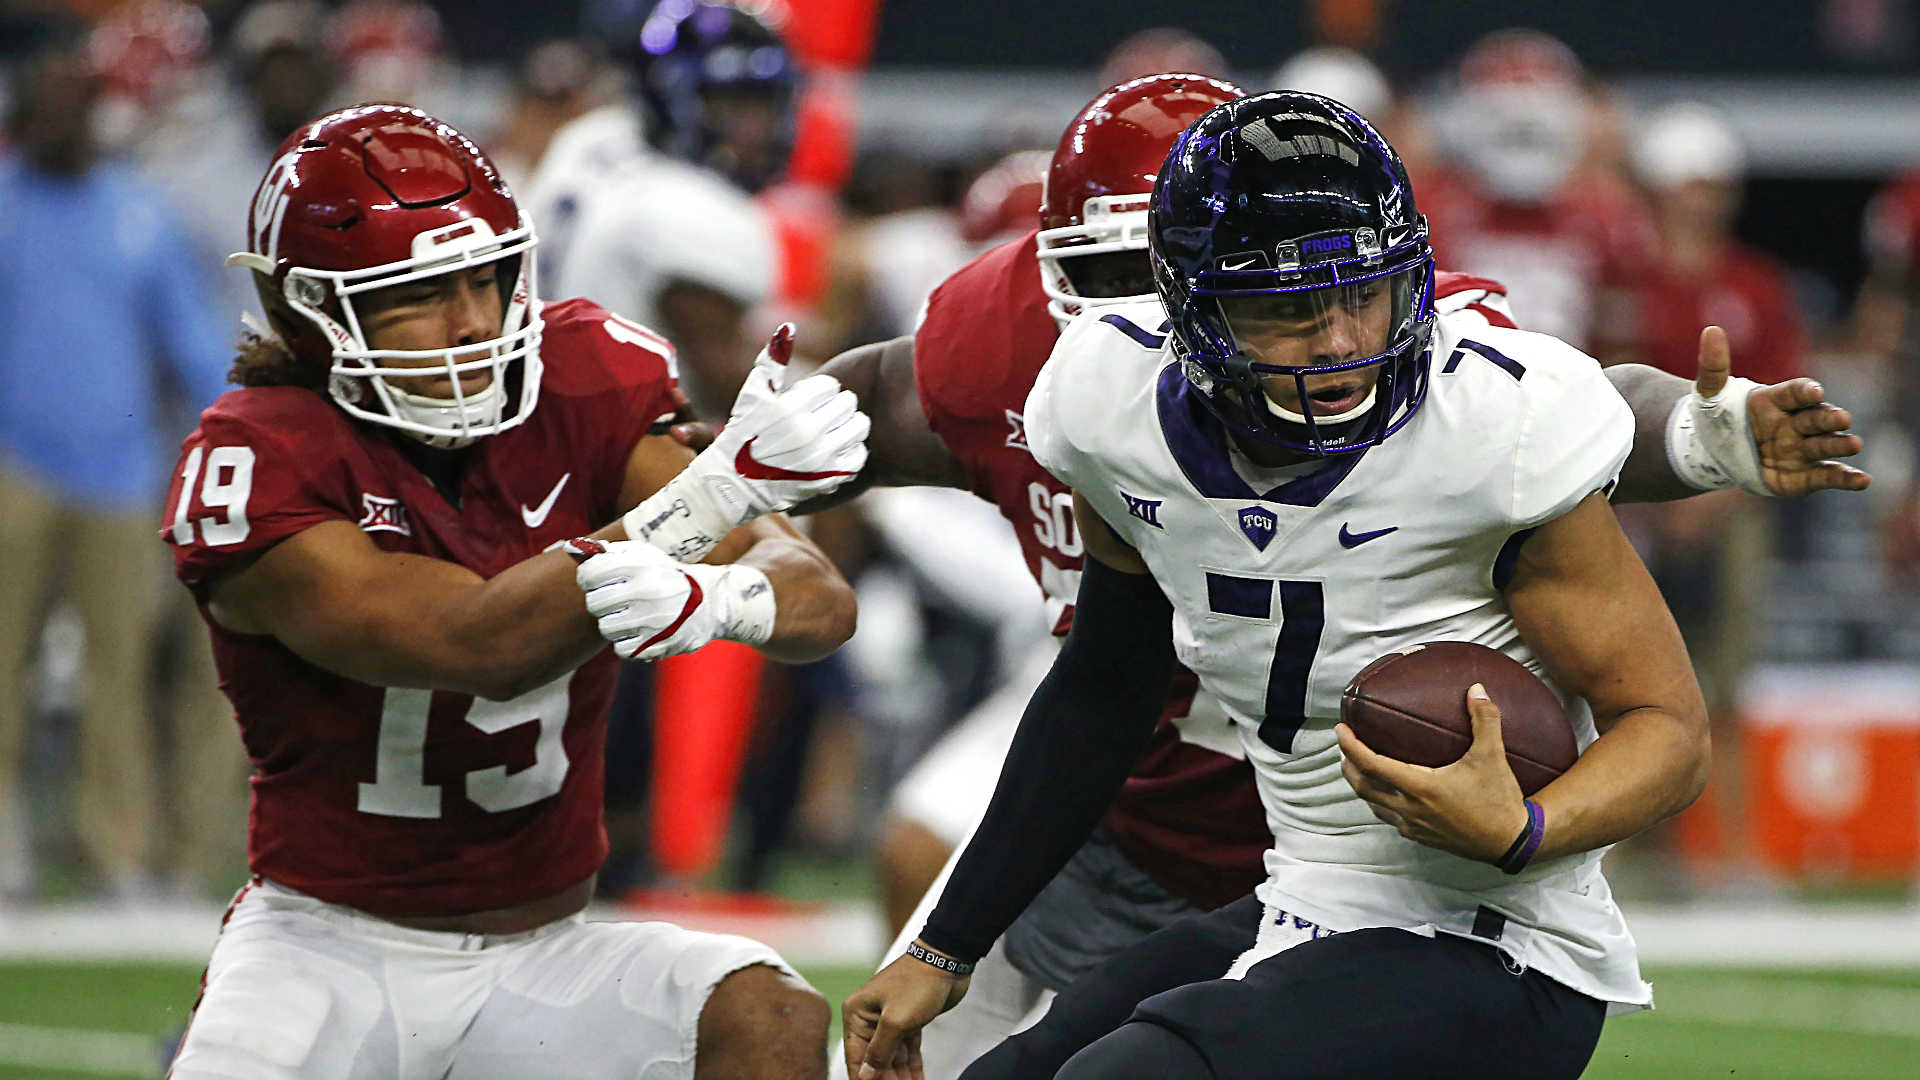 Oklahoma routs TCU to win Big 12 title